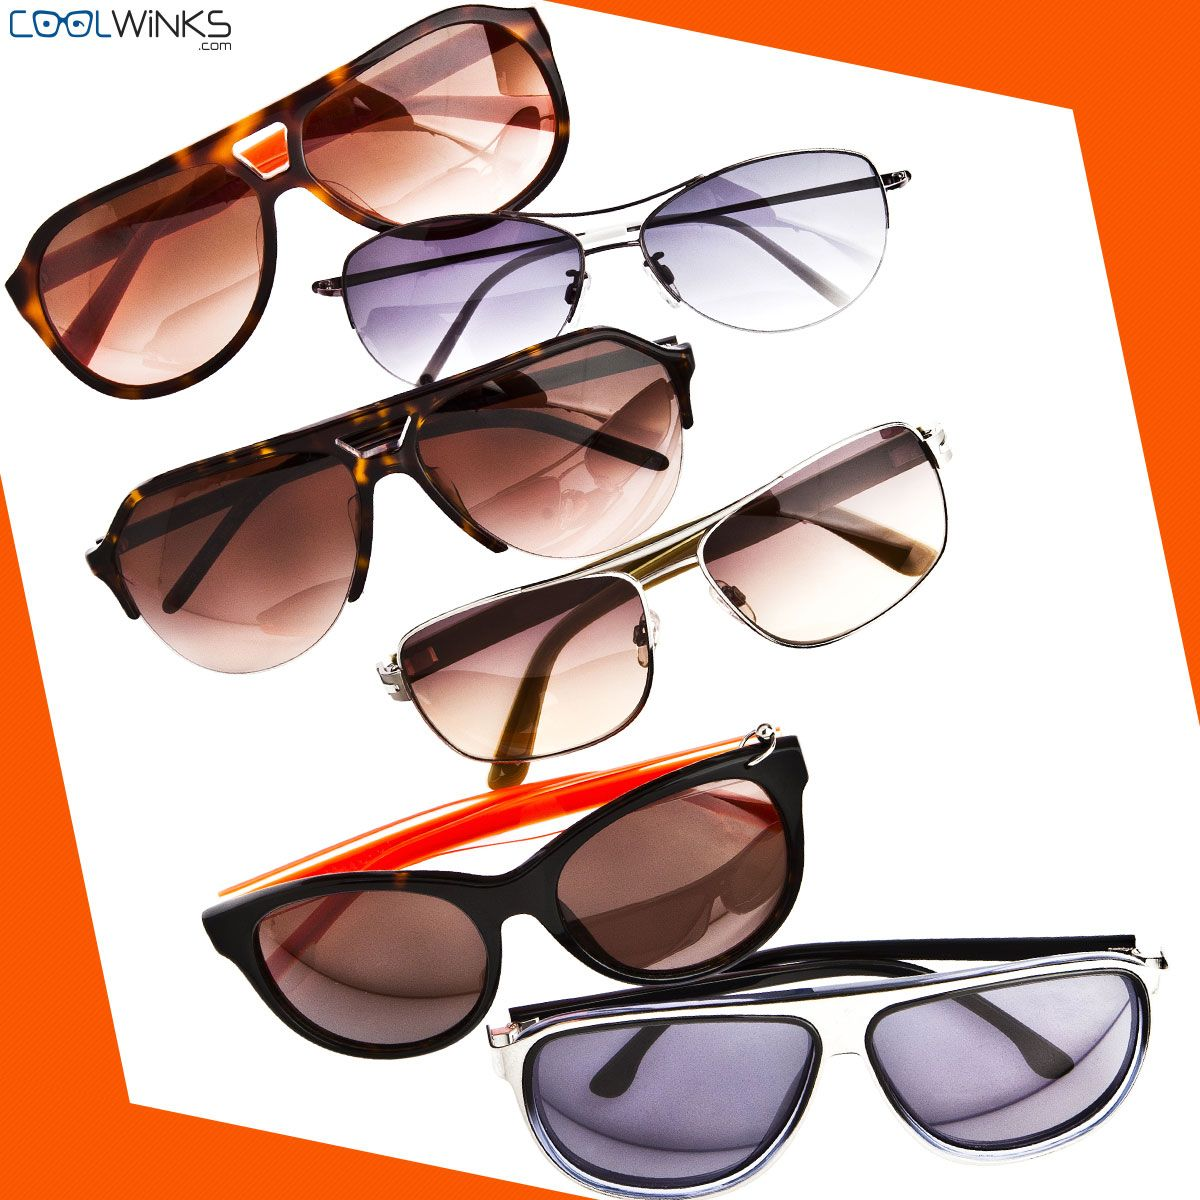 77aad220b0e3 Grab some Stylish Sunglasses  Coolwinks   FLAT 60% OFF ! Shop the PREMIUM  COLLECTION starting   Rs. 169. Buy Now.